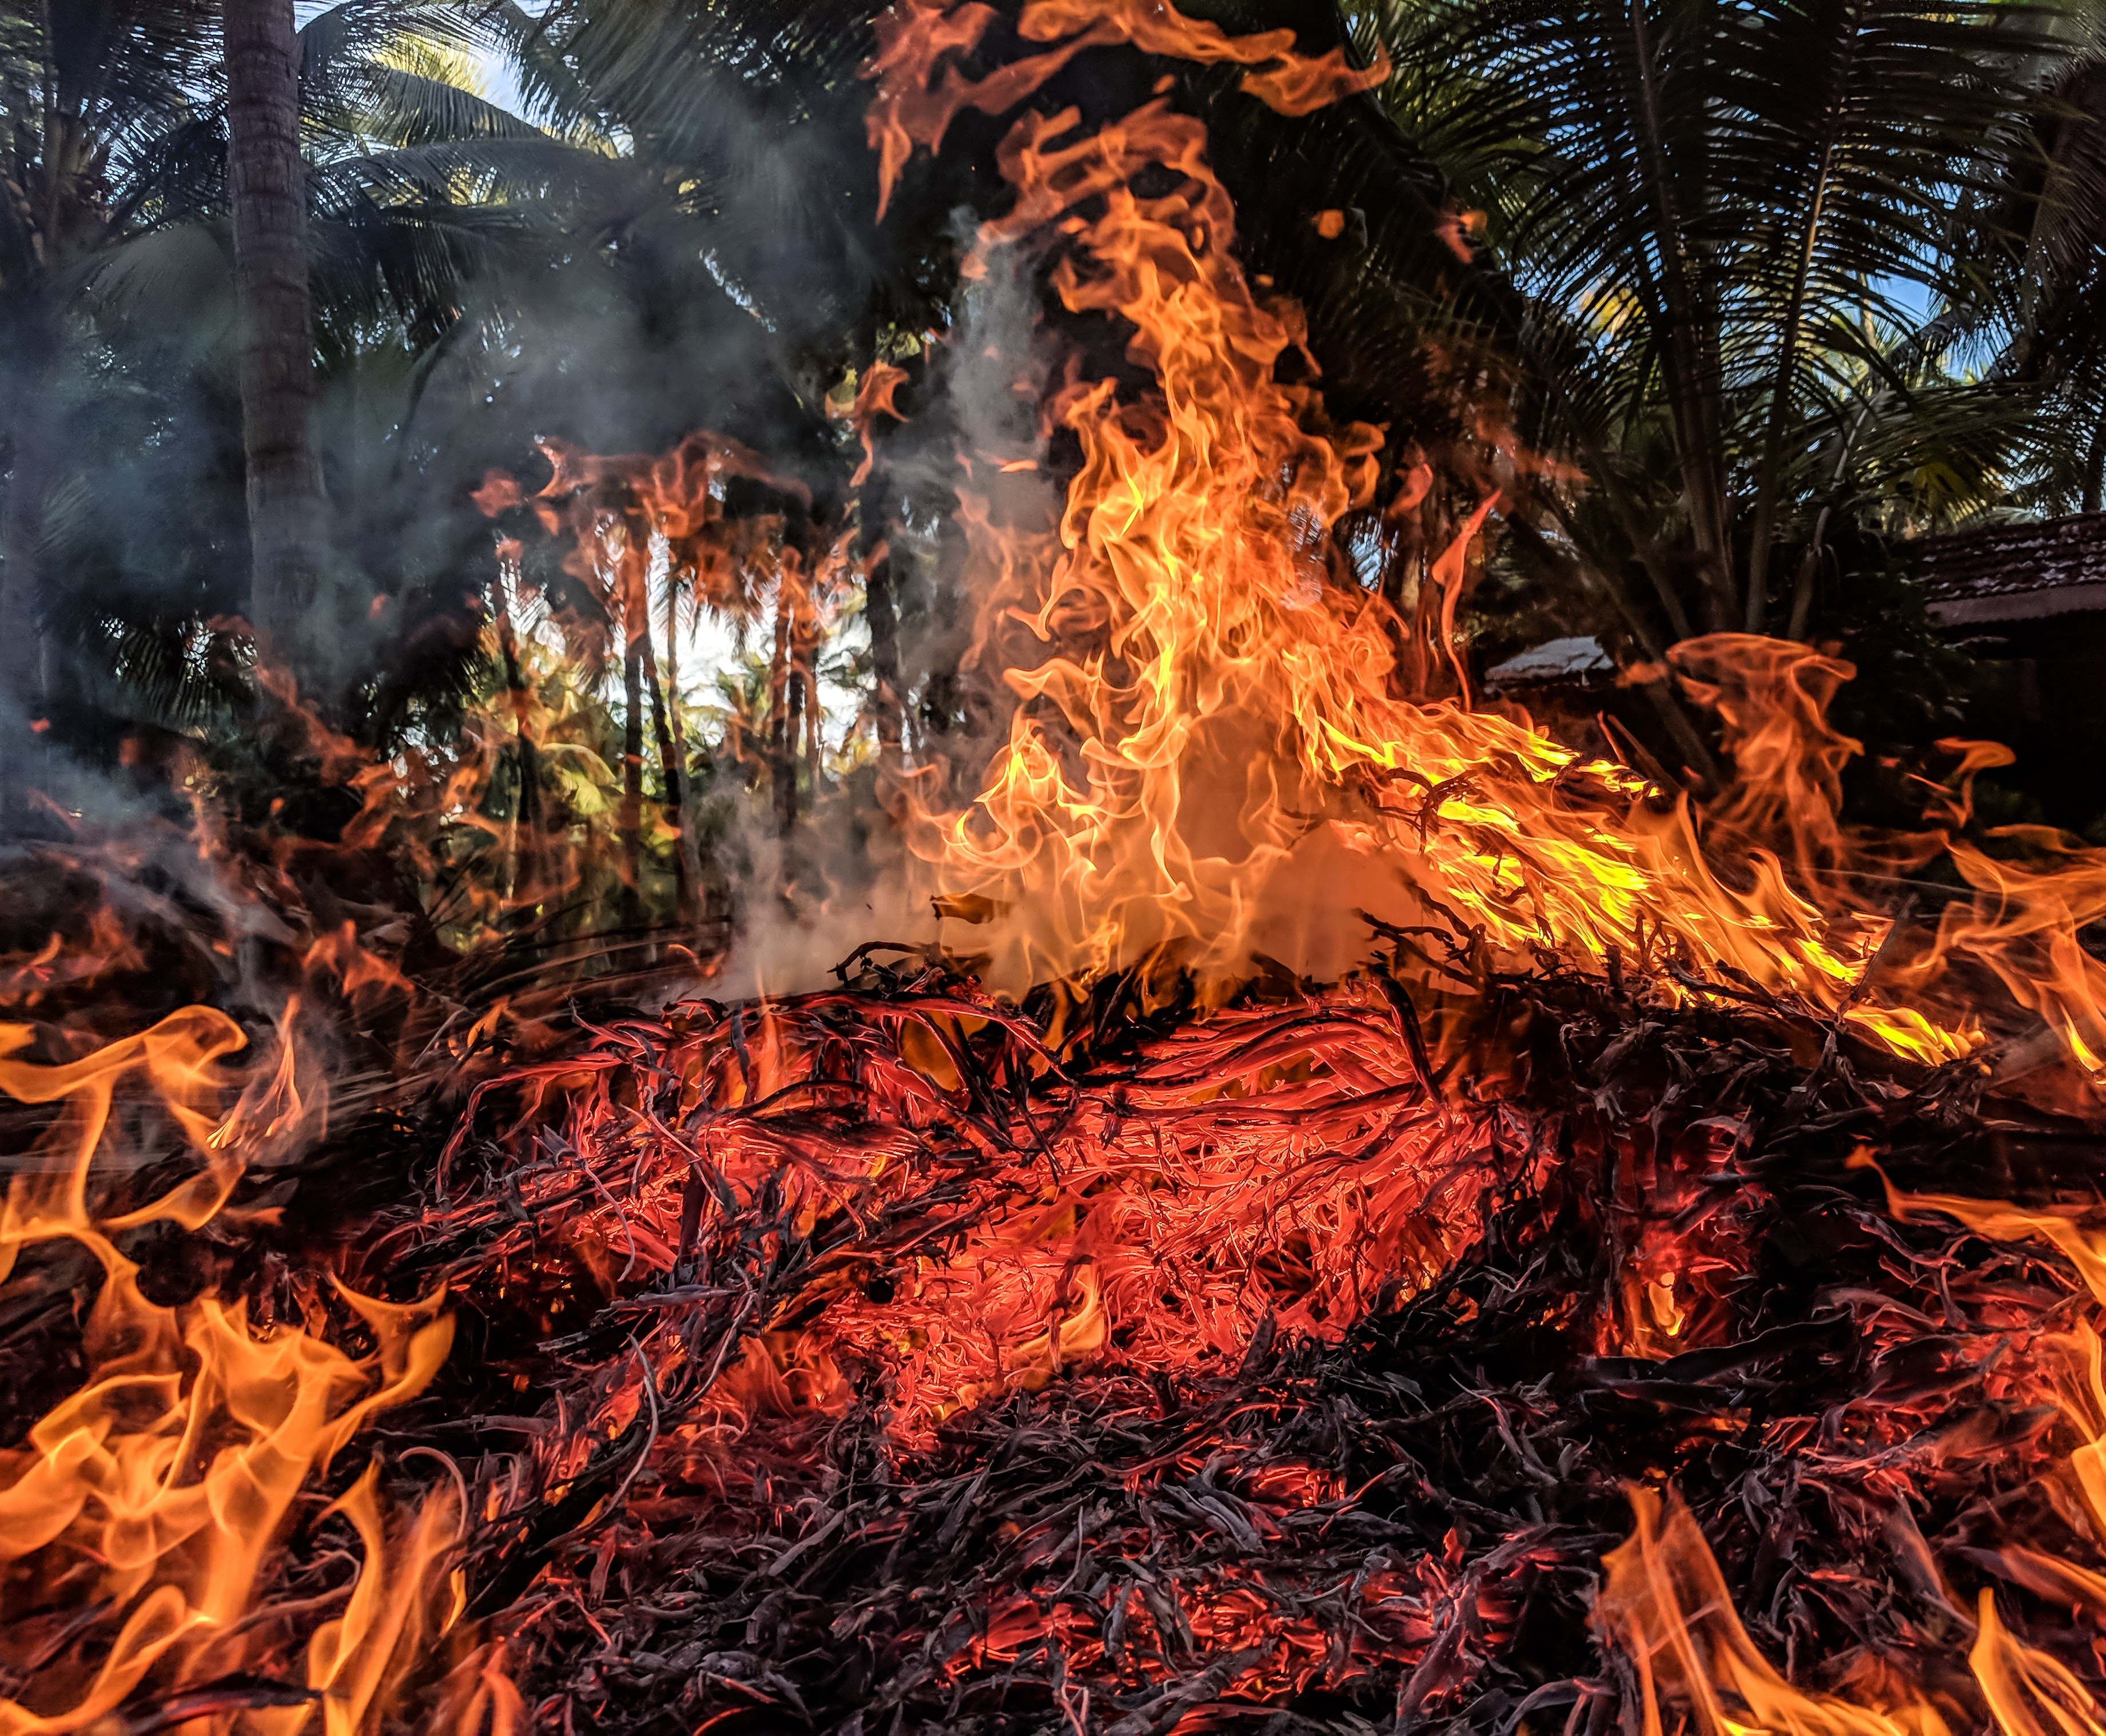 Orange Fire, Ash, Glowing, Wildfire, Warmly, HQ Photo